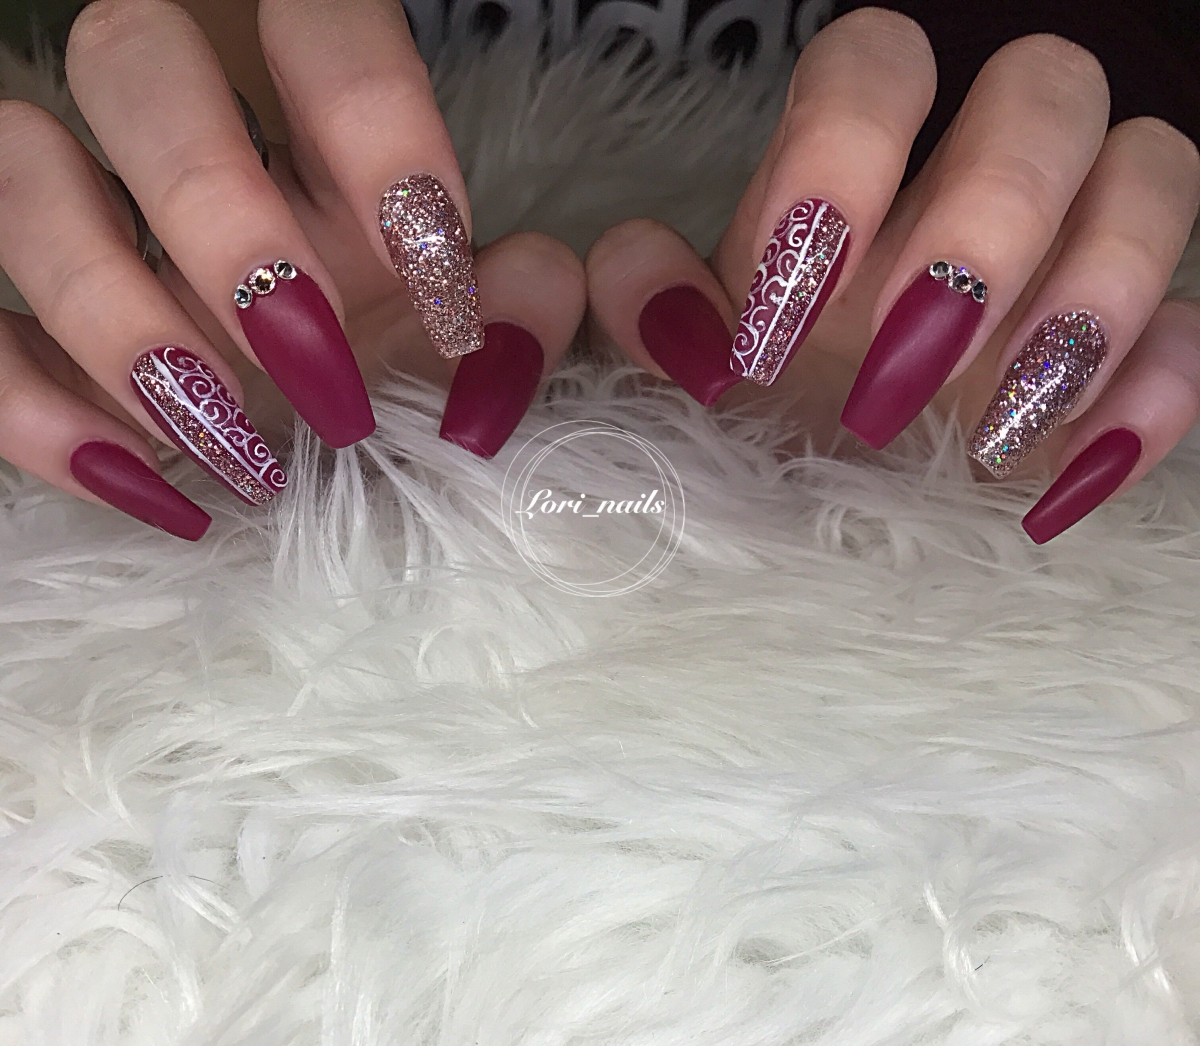 Swarovski crystal nails Archives - Dreaming of nails